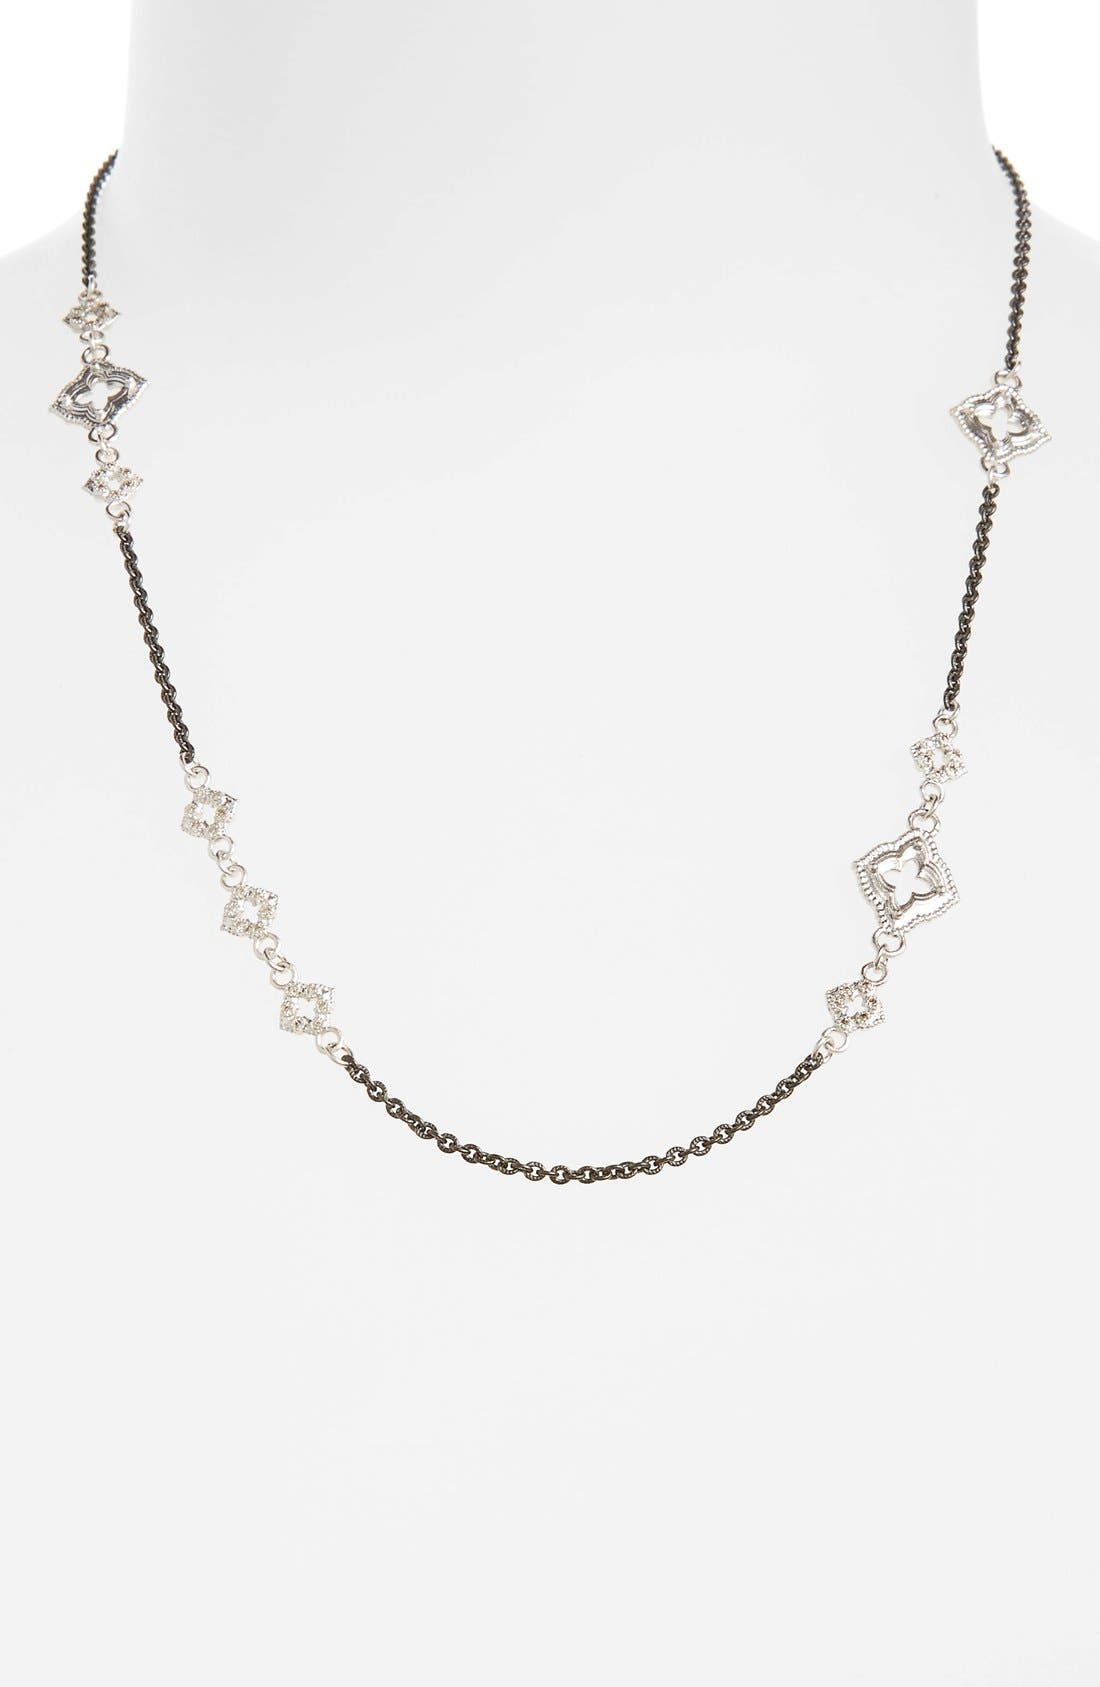 New World Chain Scroll Station Necklace,                             Main thumbnail 1, color,                             Champagne/ Black